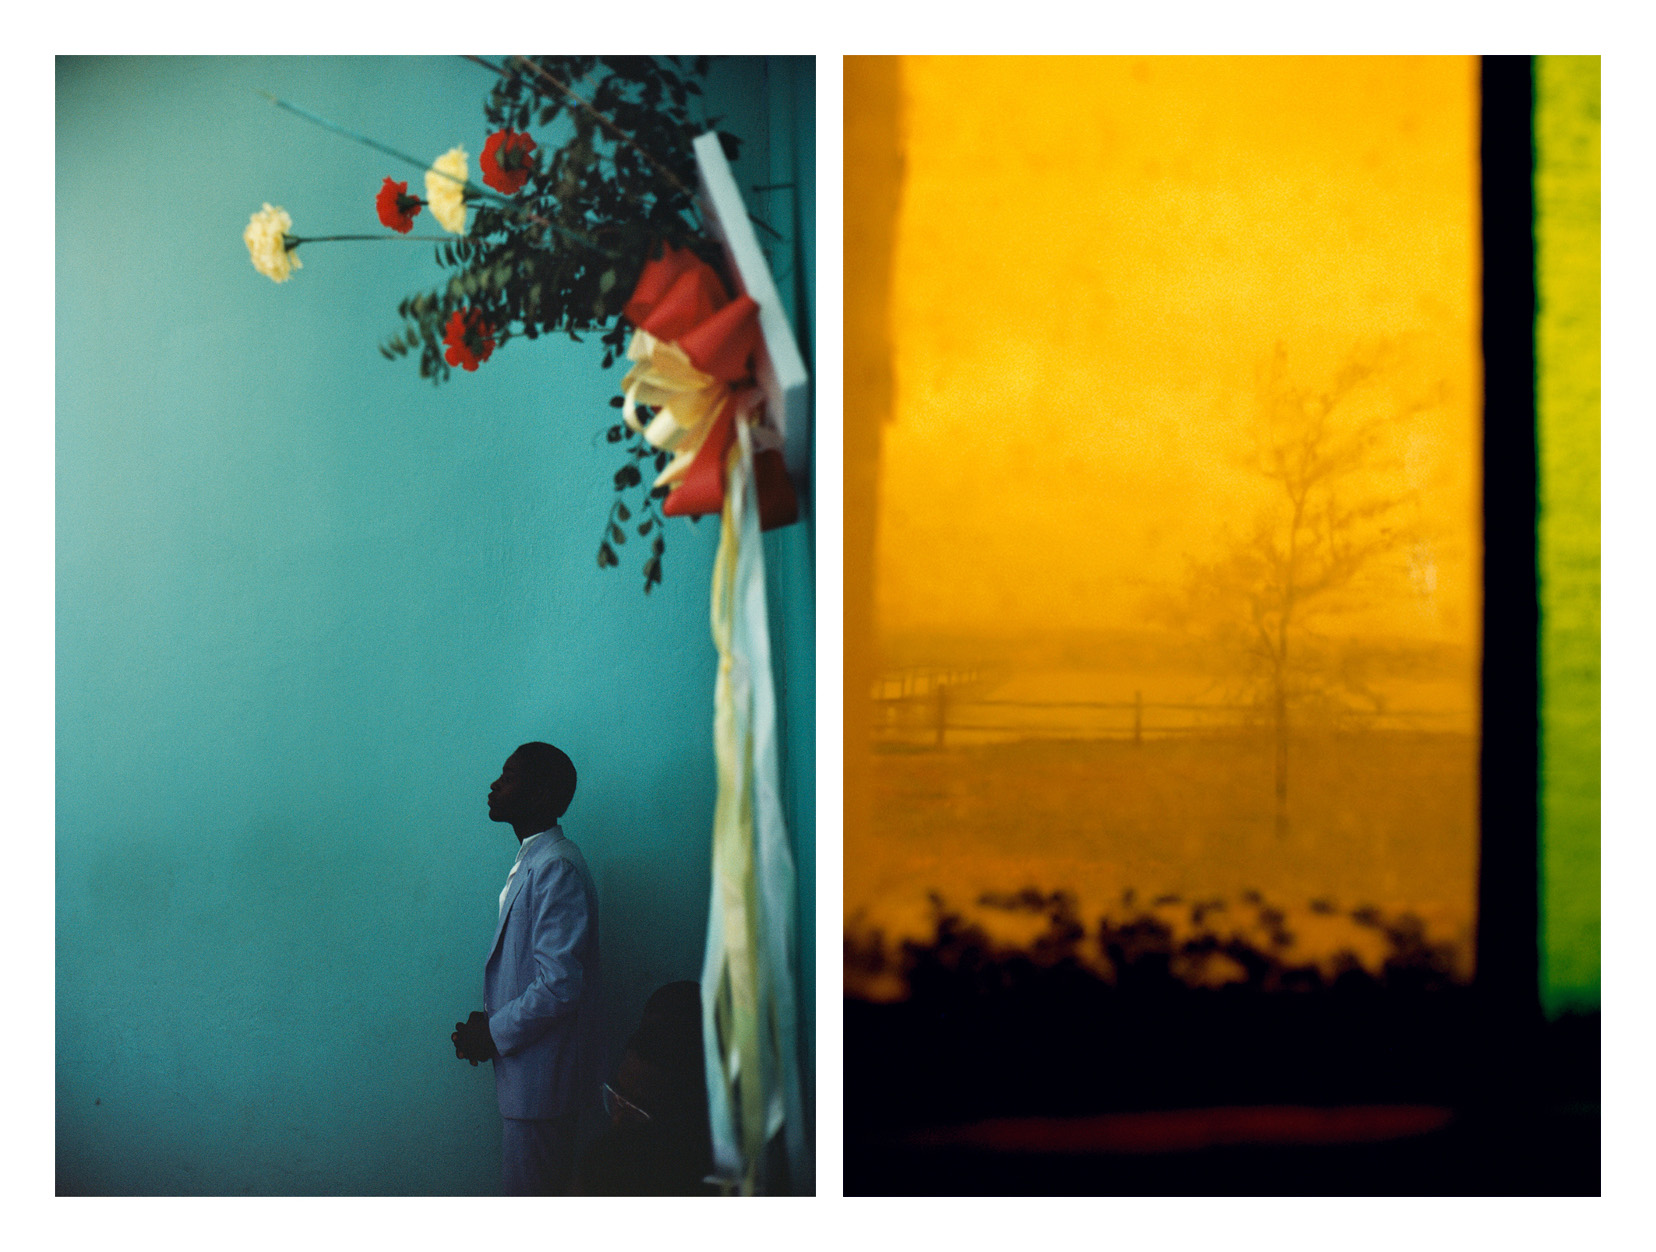 Photographs: (Left) Alex Webb, Arcahaie, Haiti; (Right) Rebecca Norris Webb, Stained Glass, both from the La Fabrica book, Slant Rhymes.